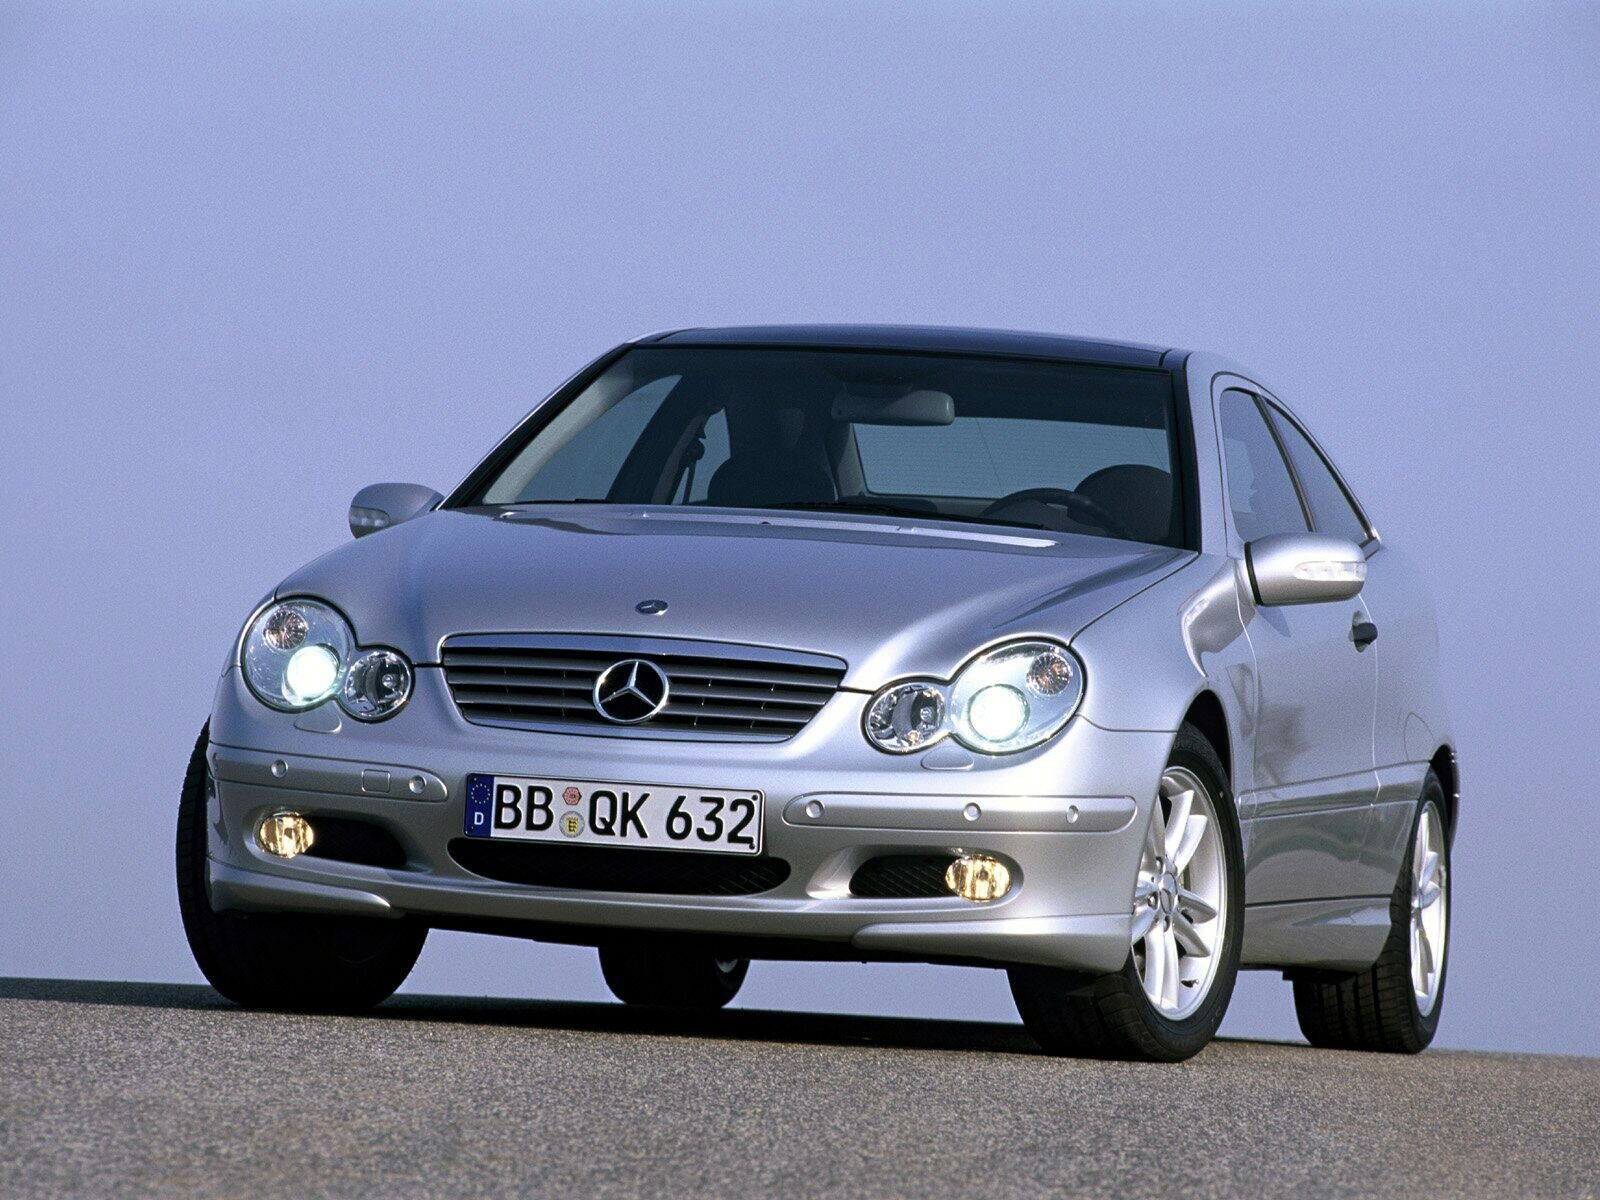 2004 mercedes c class picture 25811 car review top speed. Black Bedroom Furniture Sets. Home Design Ideas